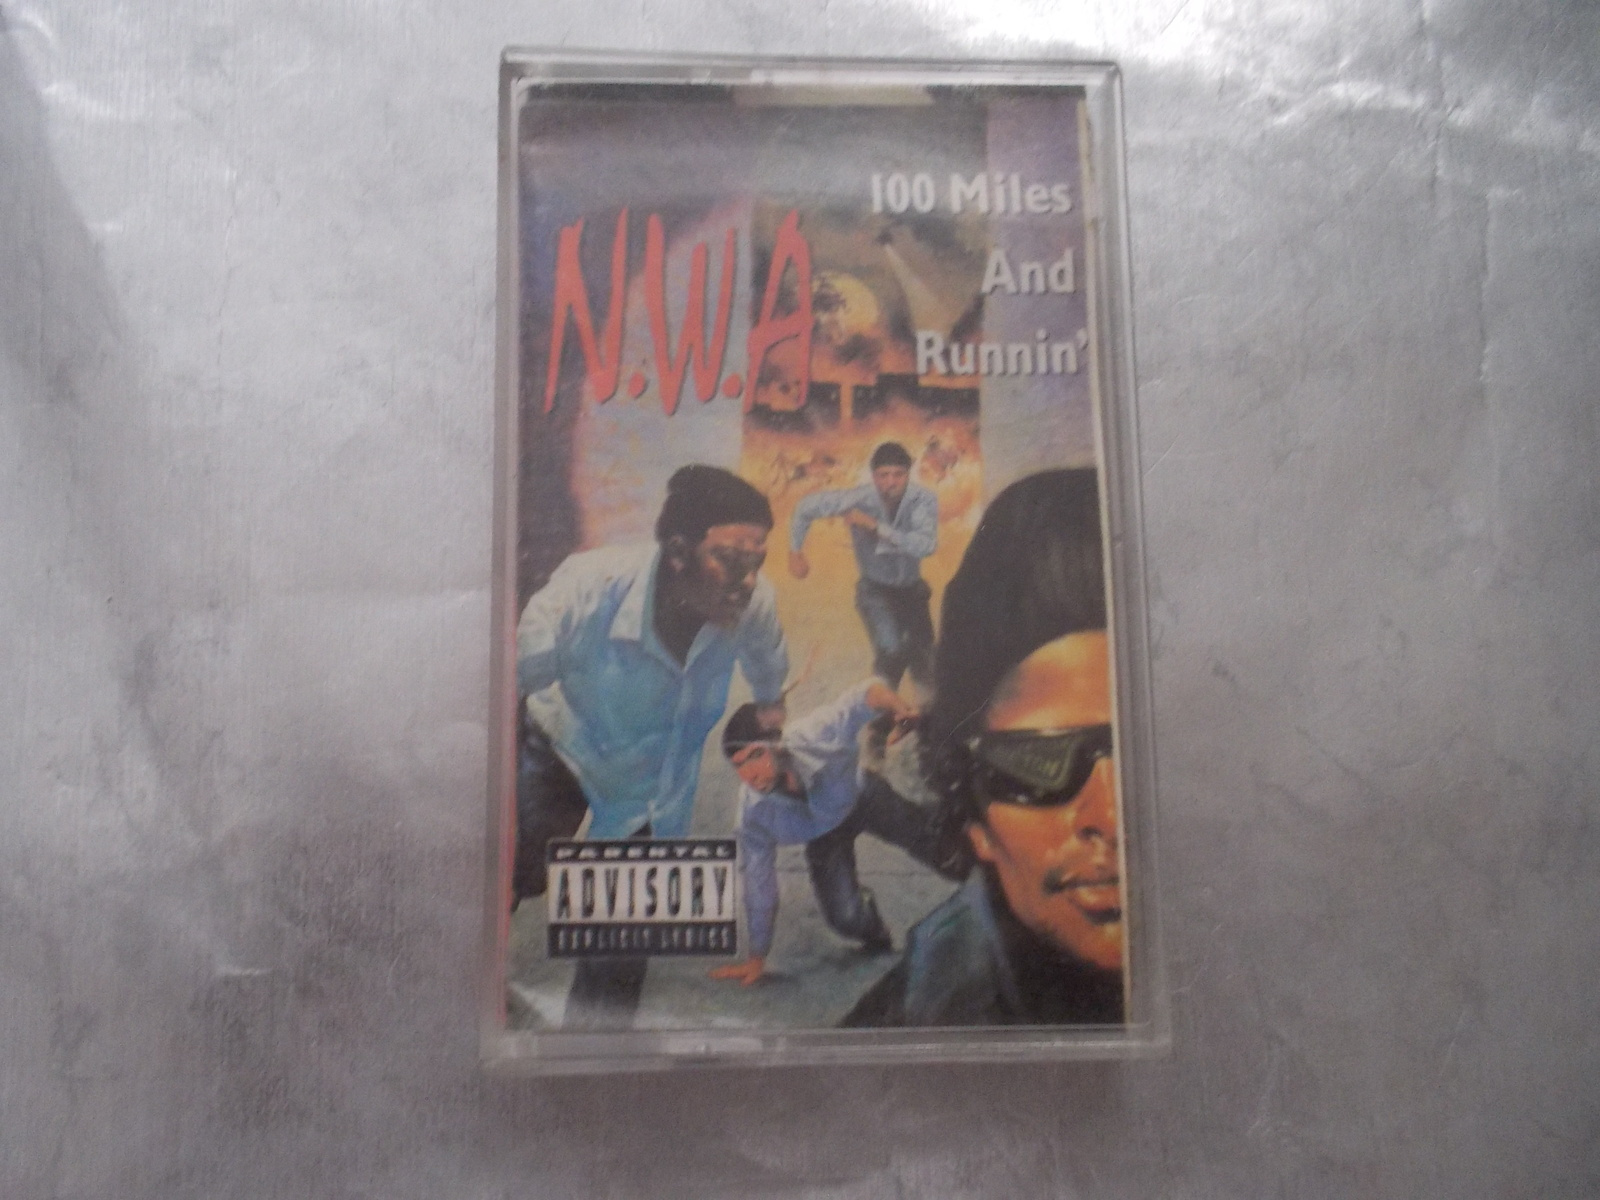 N.W.A. 100 MILES AND RUNNIN' CASSETTE  1990